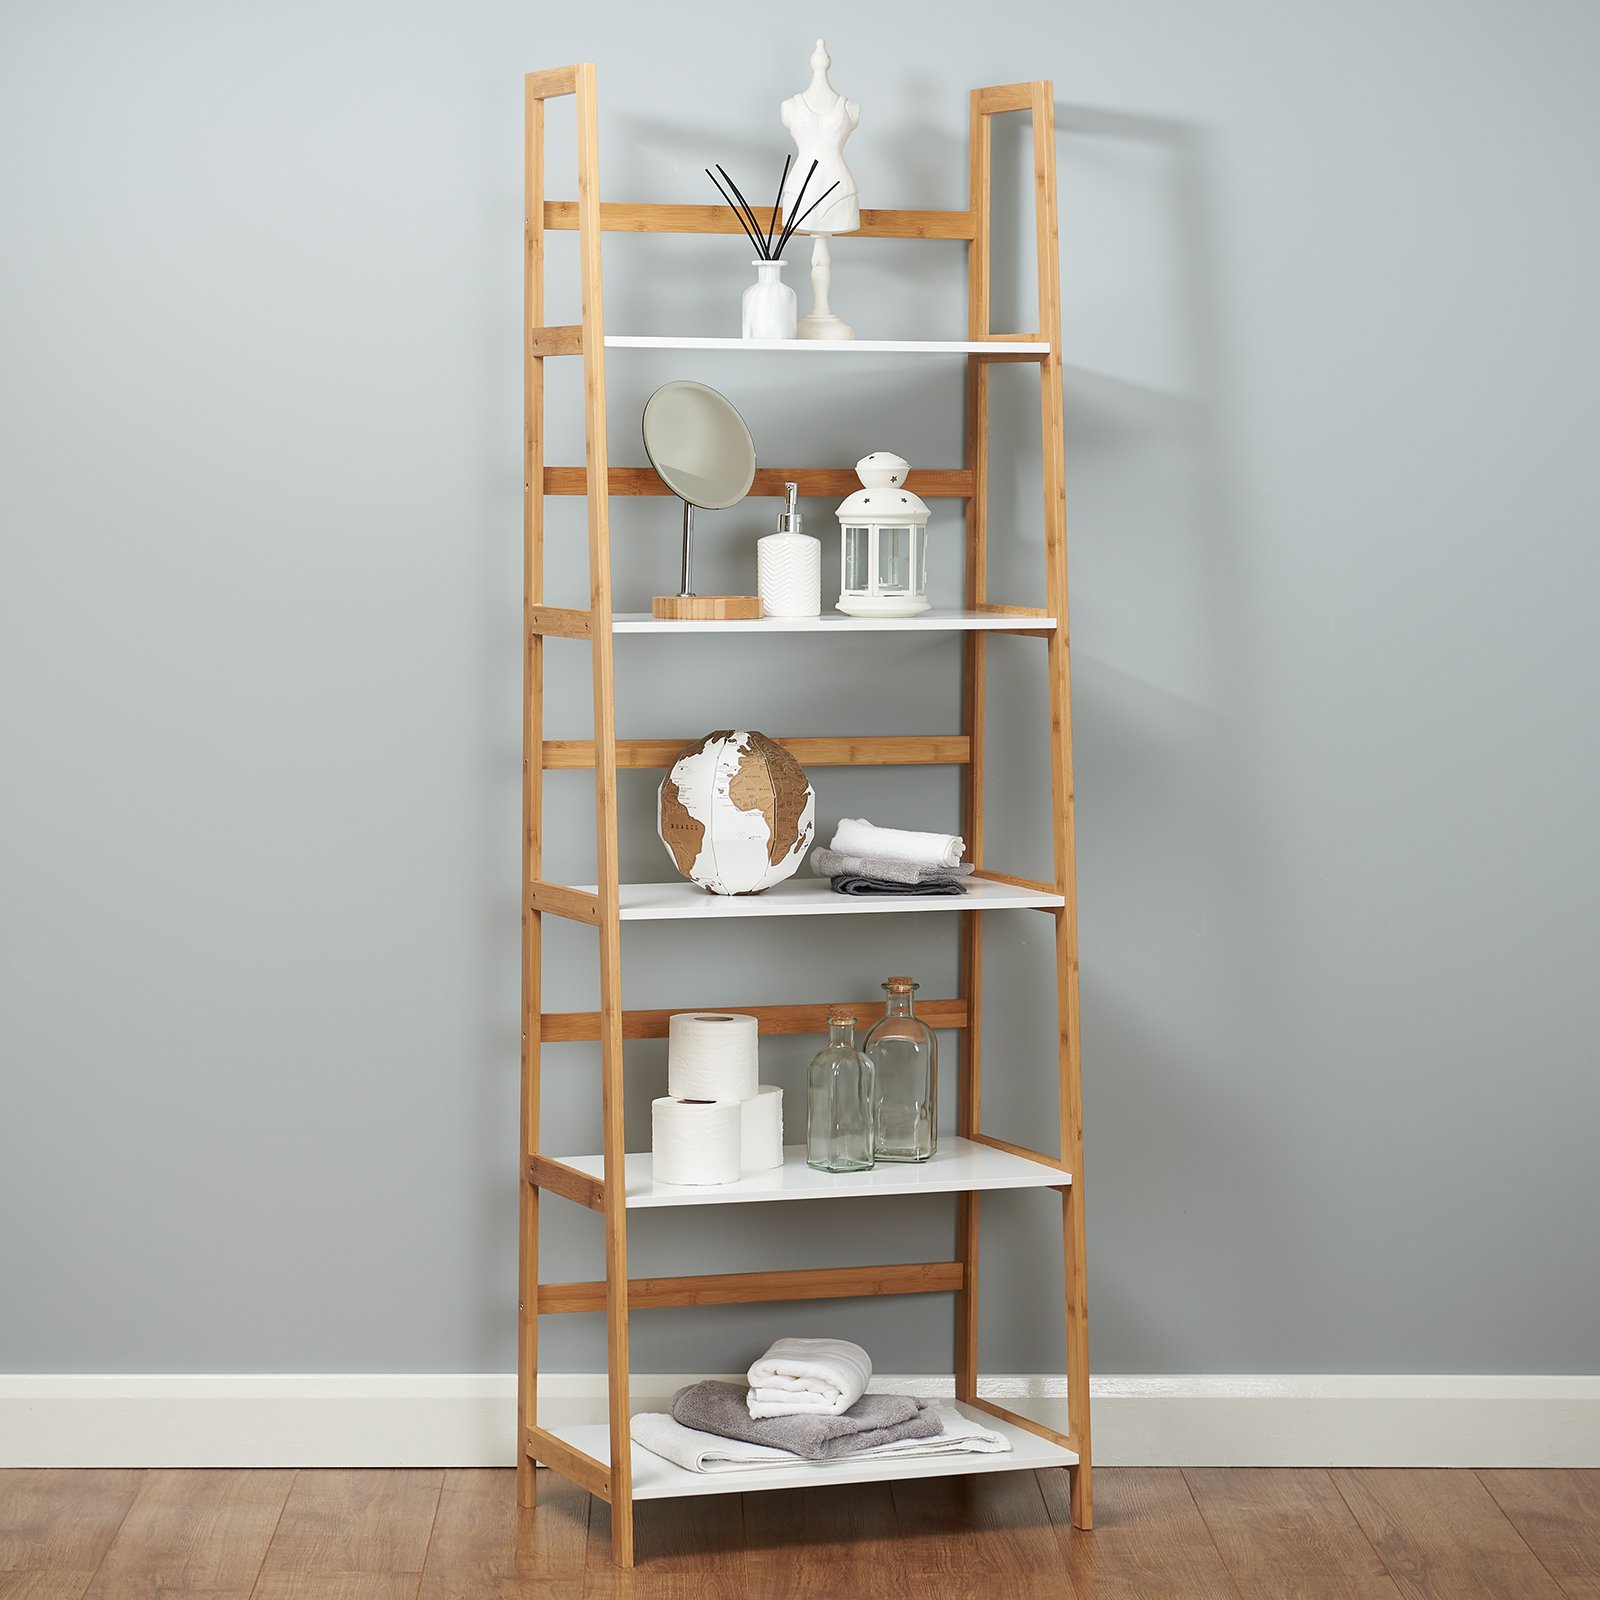 newest collection b3e9b c7126 Details about 5 Tier Freestanding Tall 1.8M White Bookcase/Bookshelf Modern  Storage Shelves